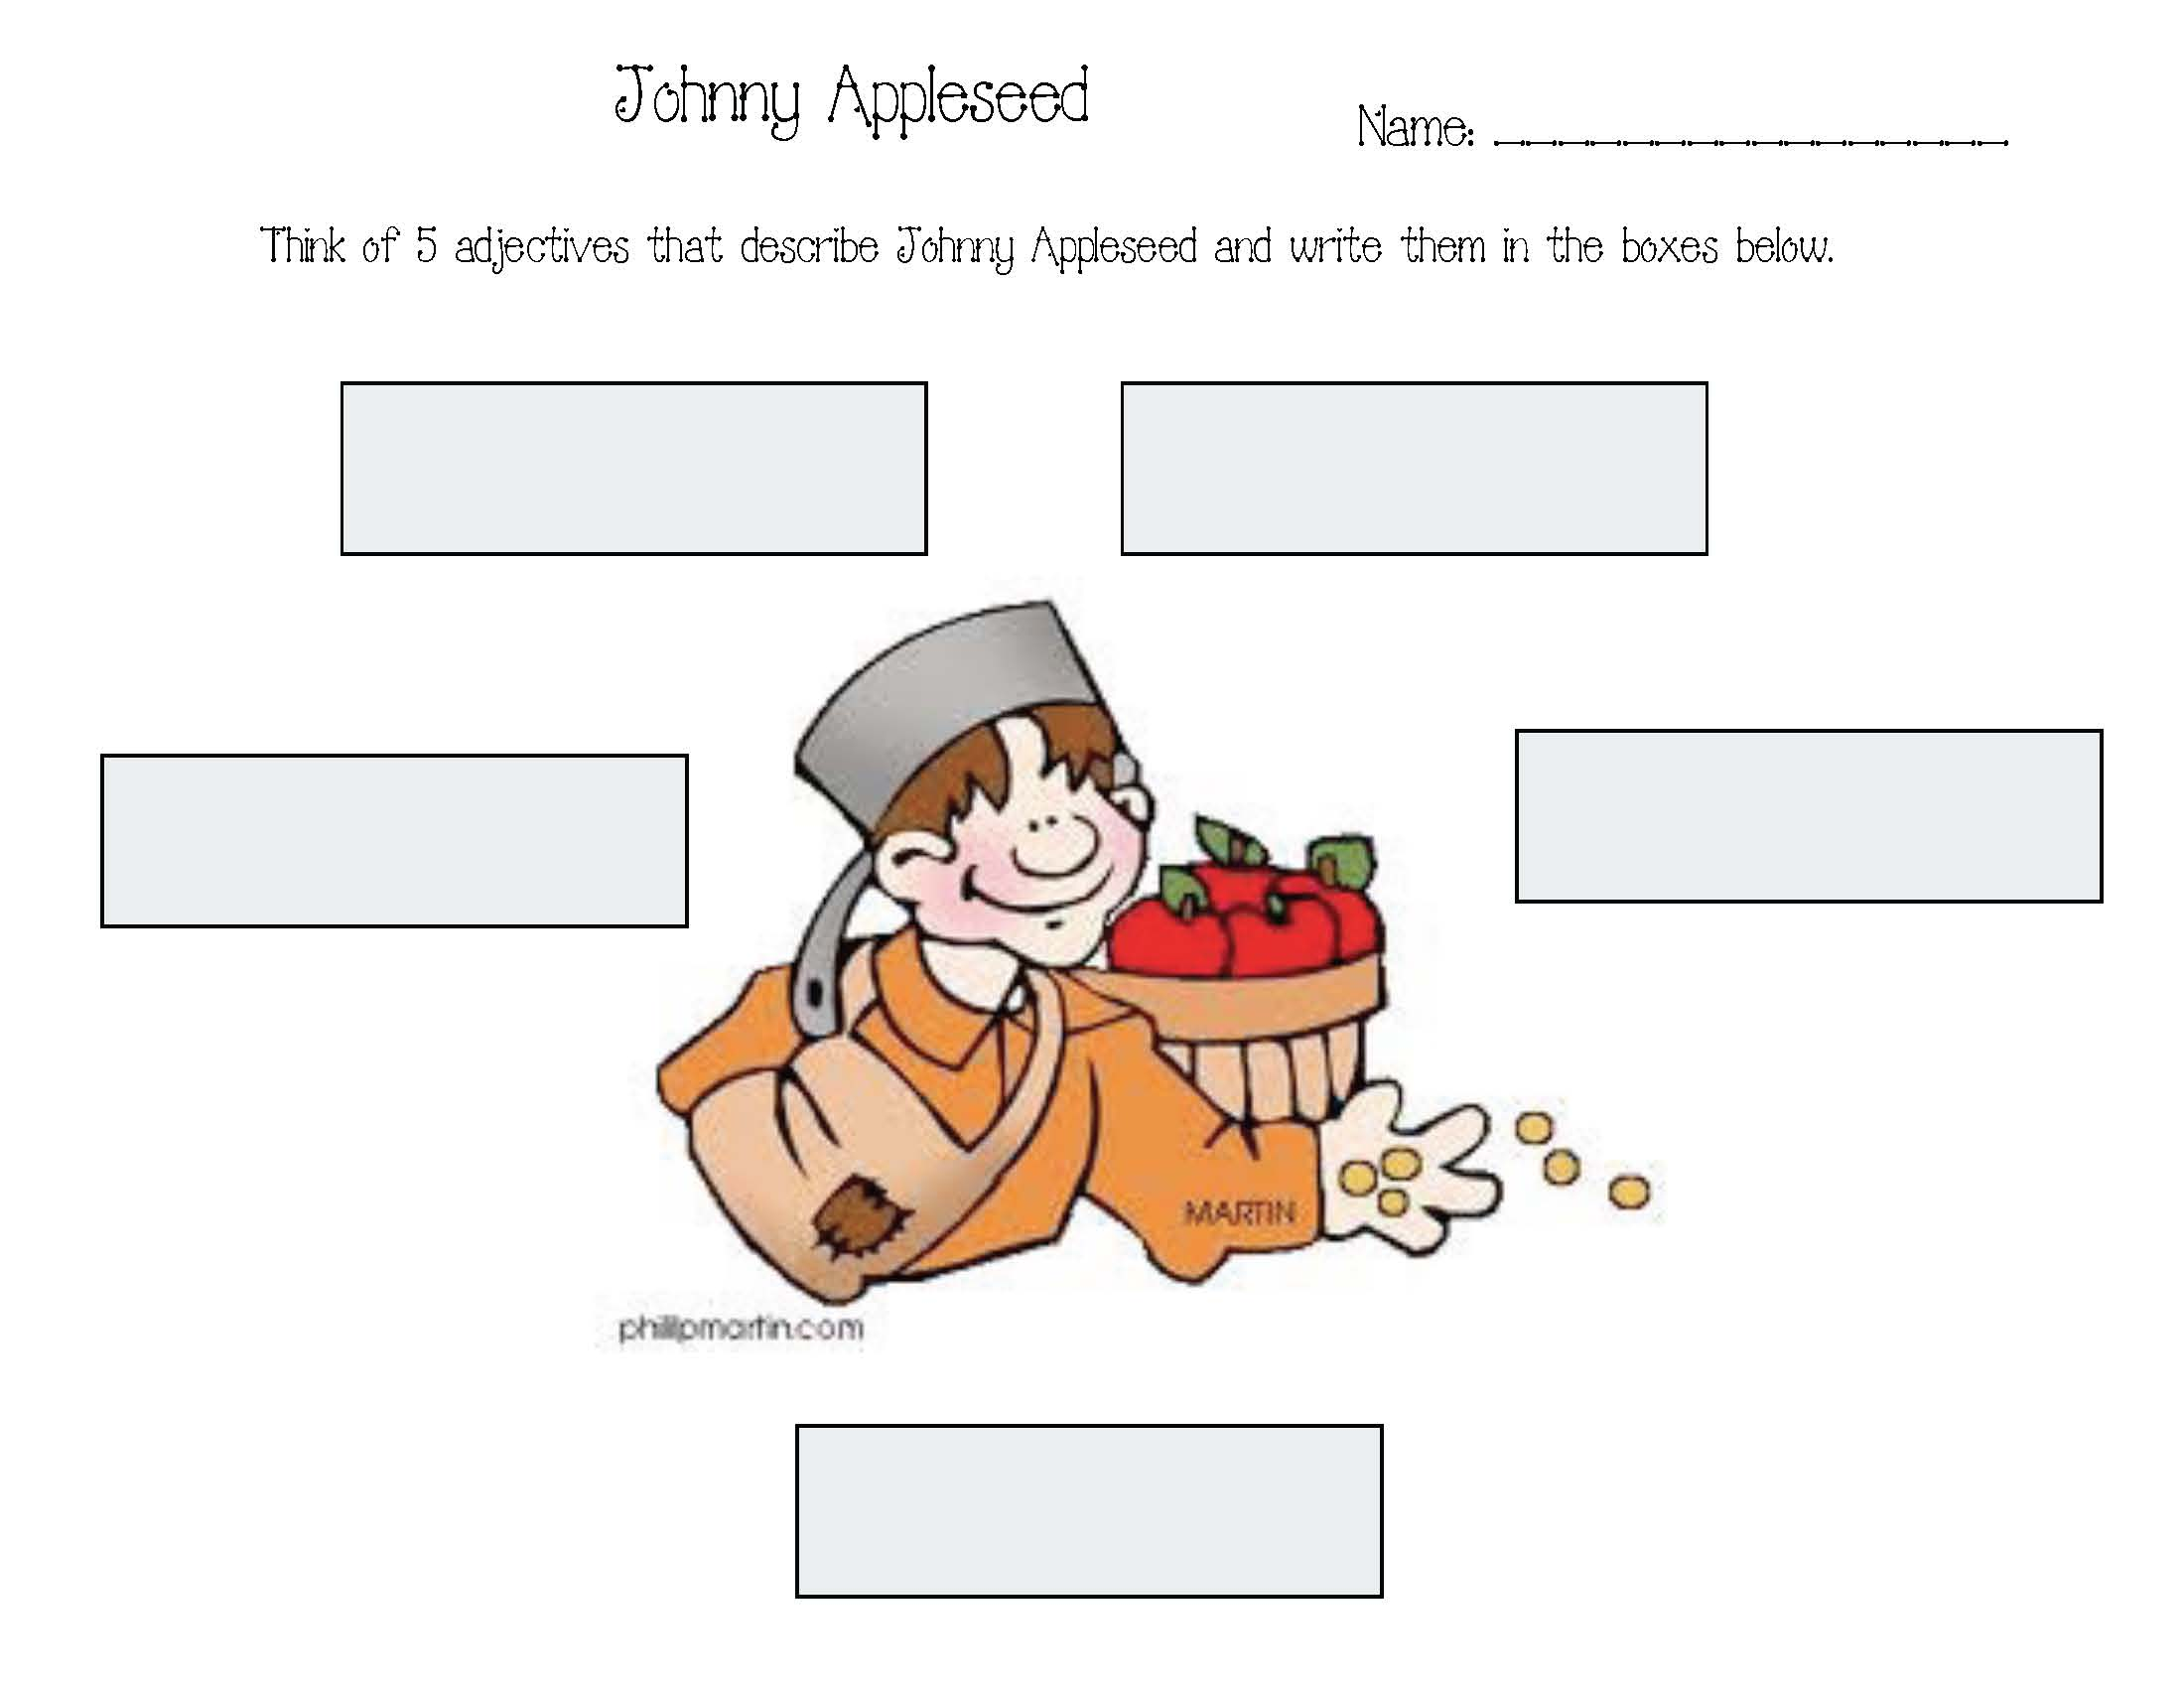 johnny appleseed activities, common core johnny appleseed, johnny appleseed facts, facts about johnny appleseed, johnny appleseed's pot hat, johnny appleseed crafts, johnny appleseed lessons, johnny appleseed writing prompts